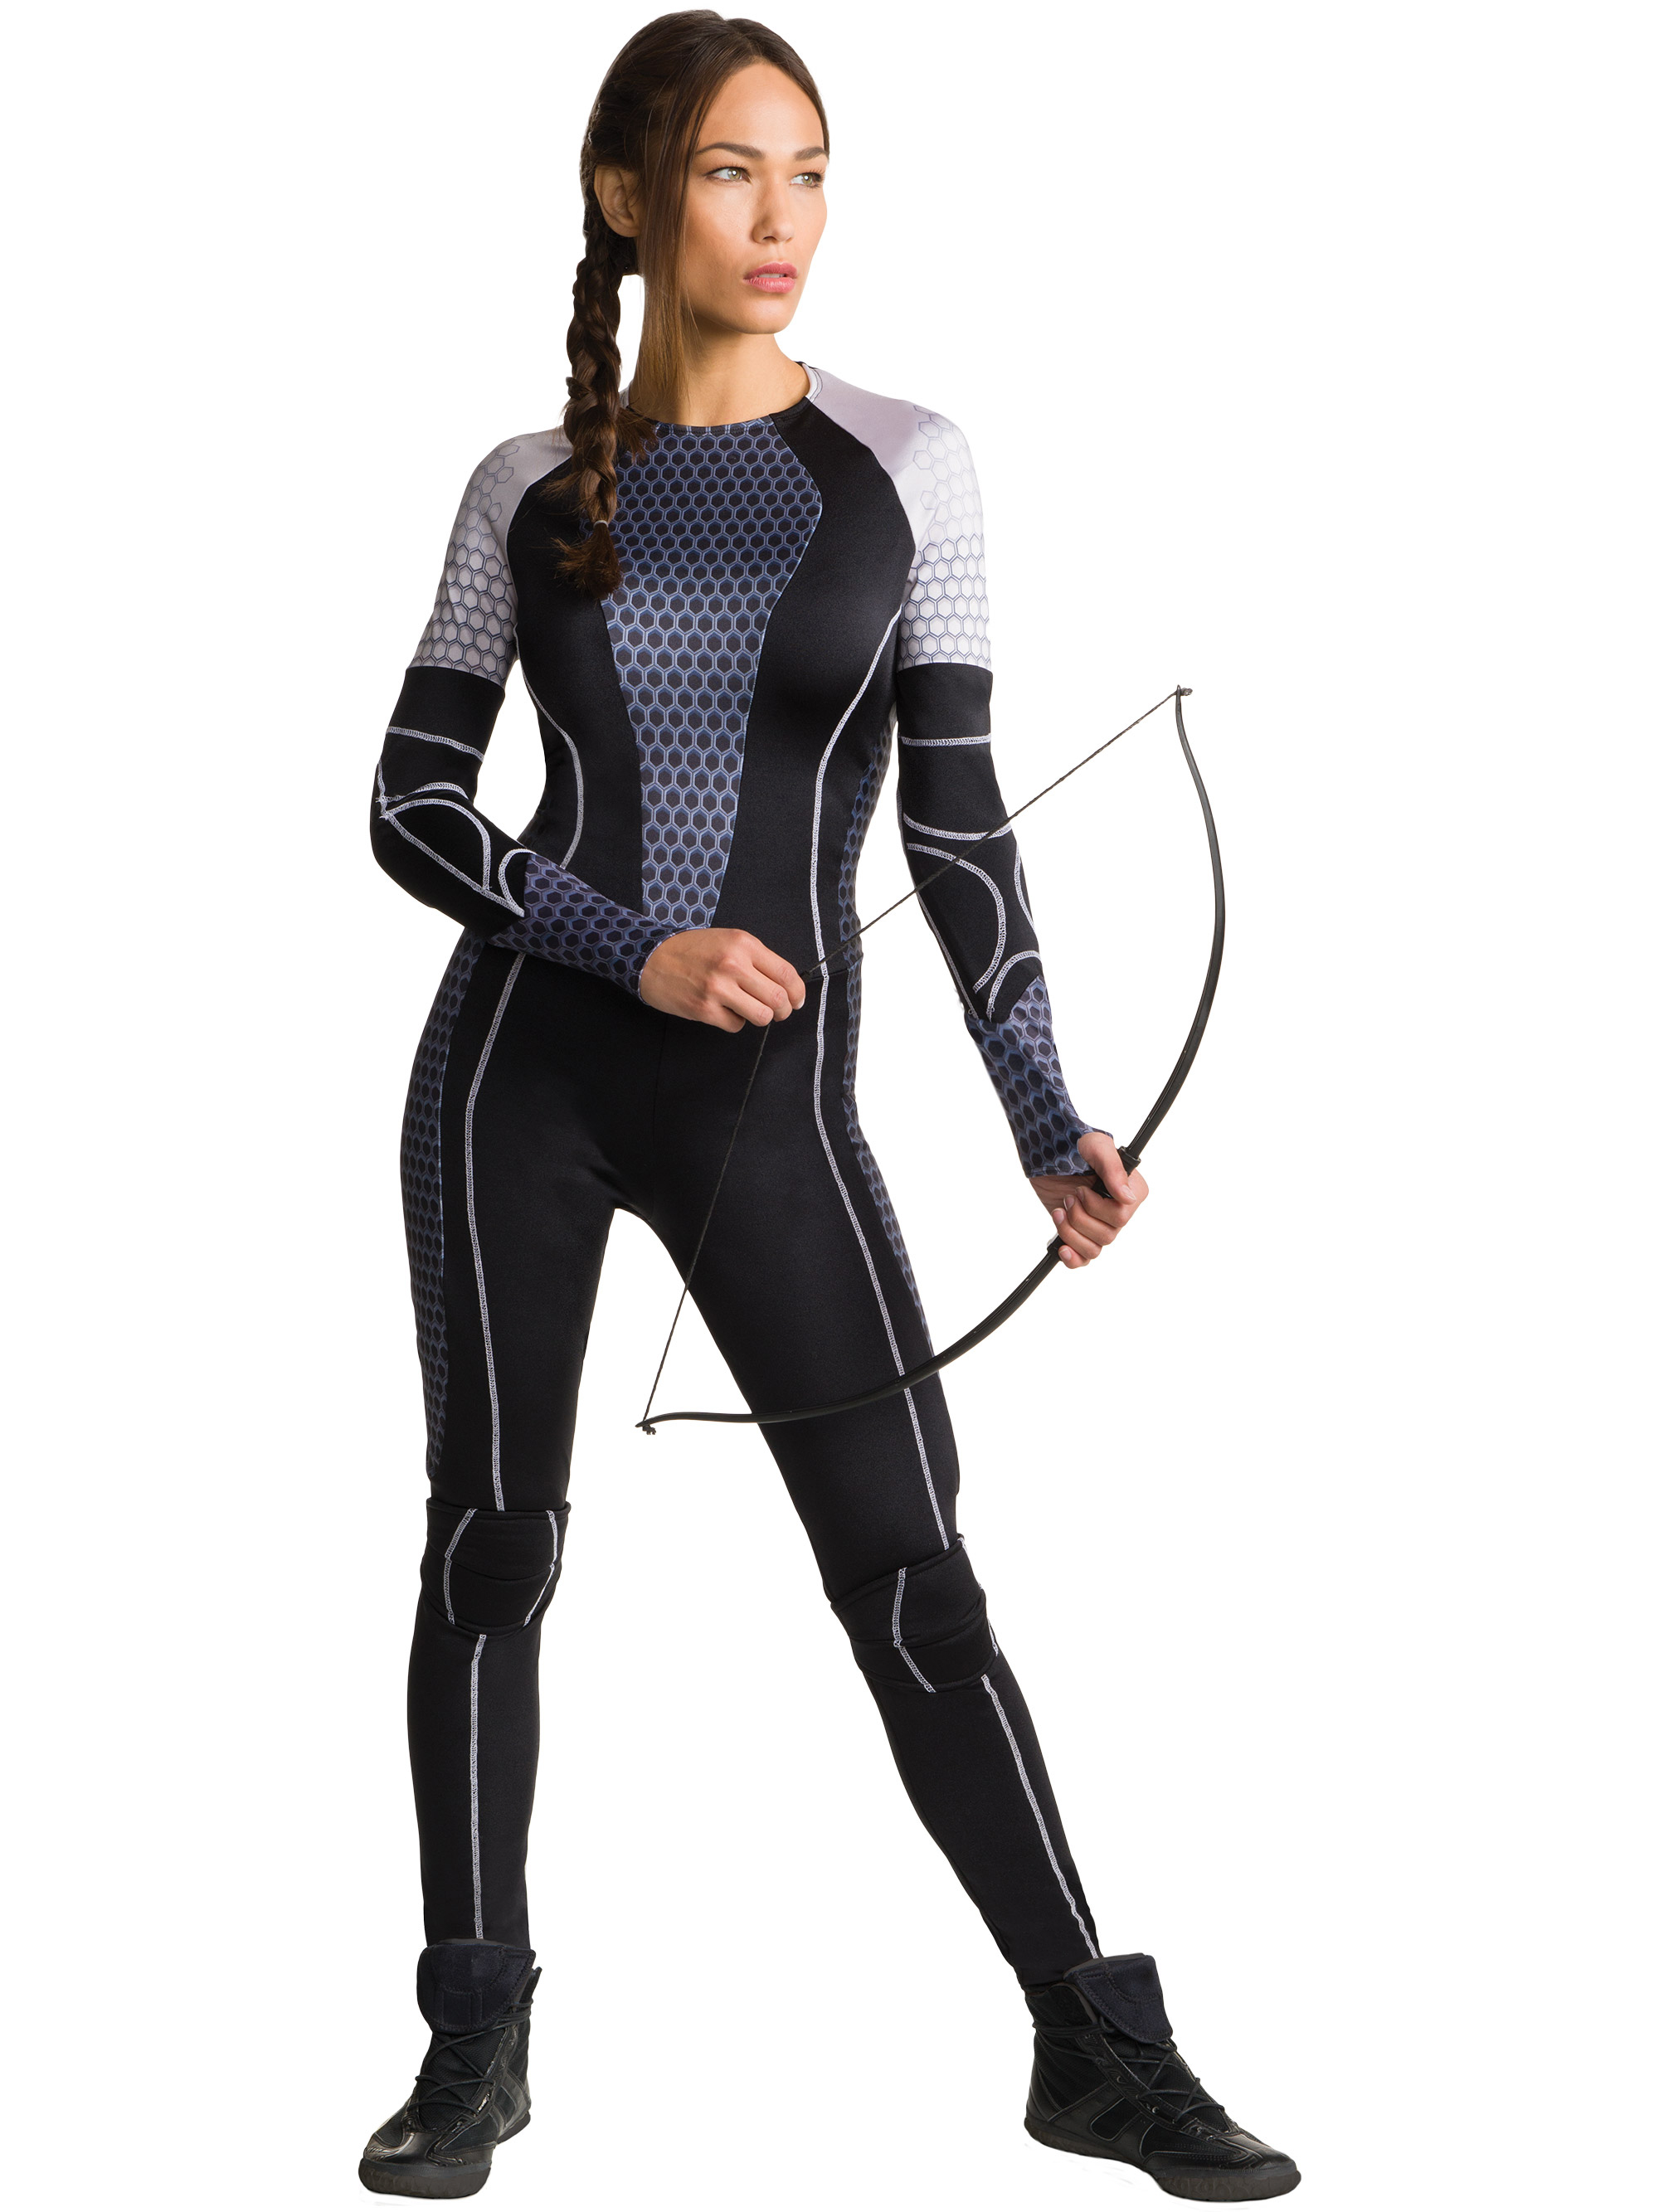 The Hunger Games Catching Fire Katniss Everdeen Adult Costume R810846-S